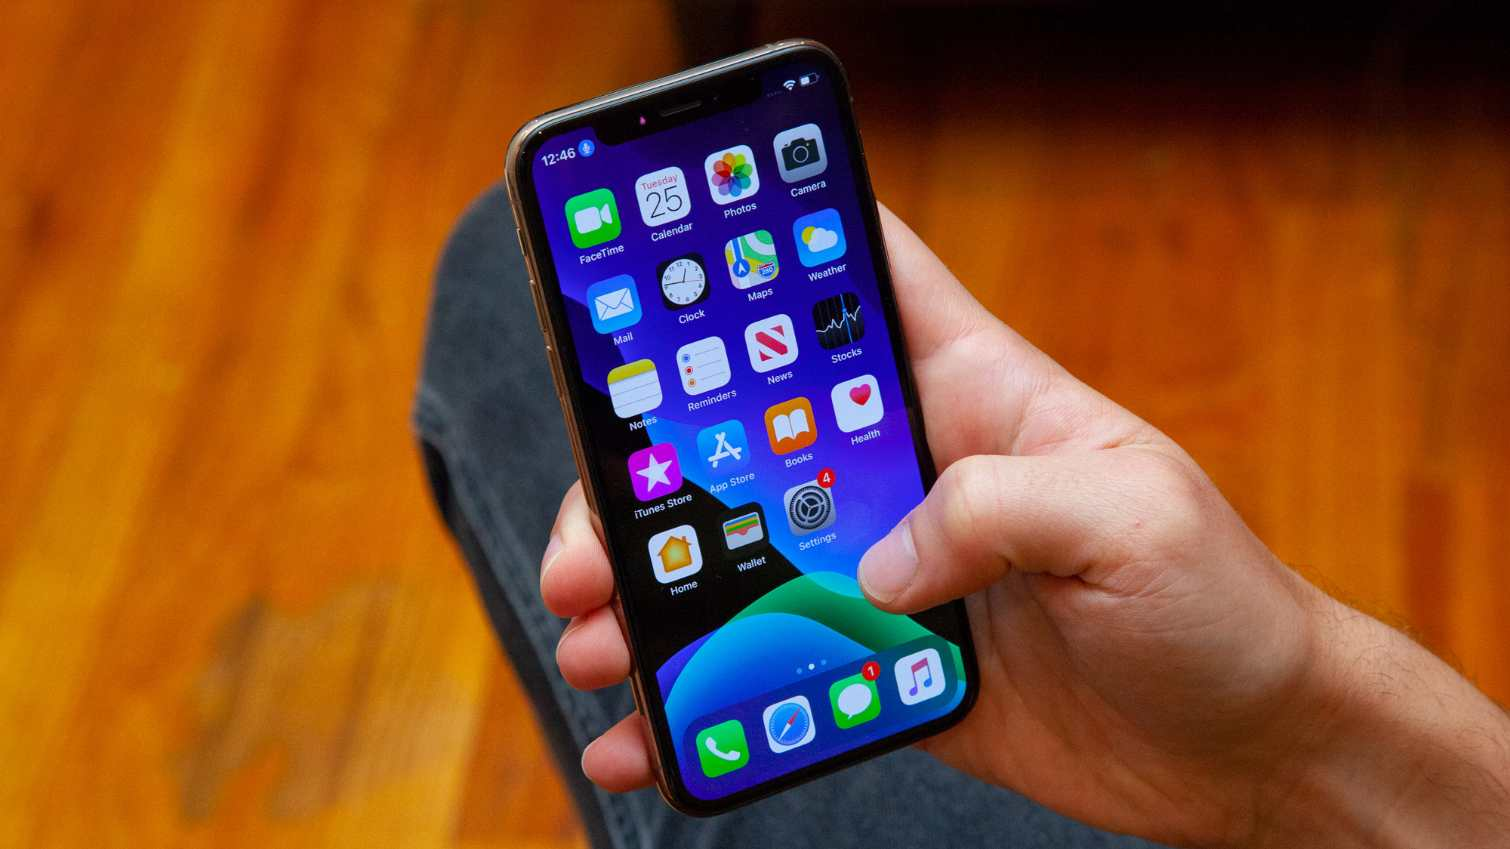 iOS 13 features and updates 1